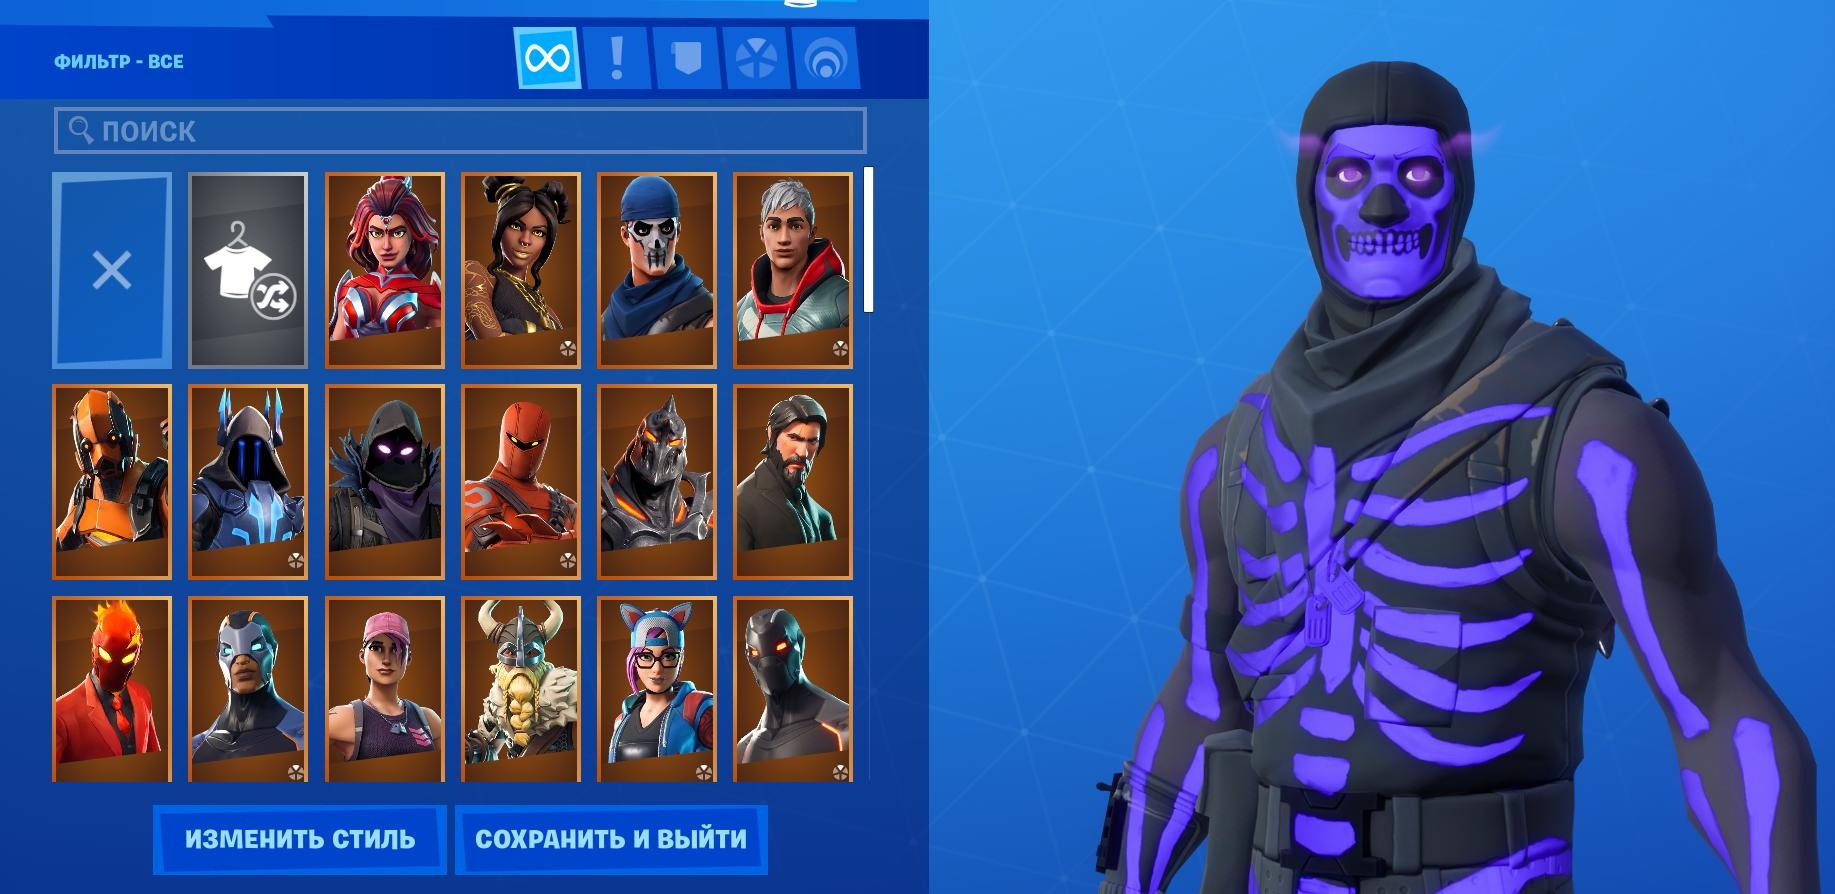 84 скина | OG Skull Trooper + Black Knight